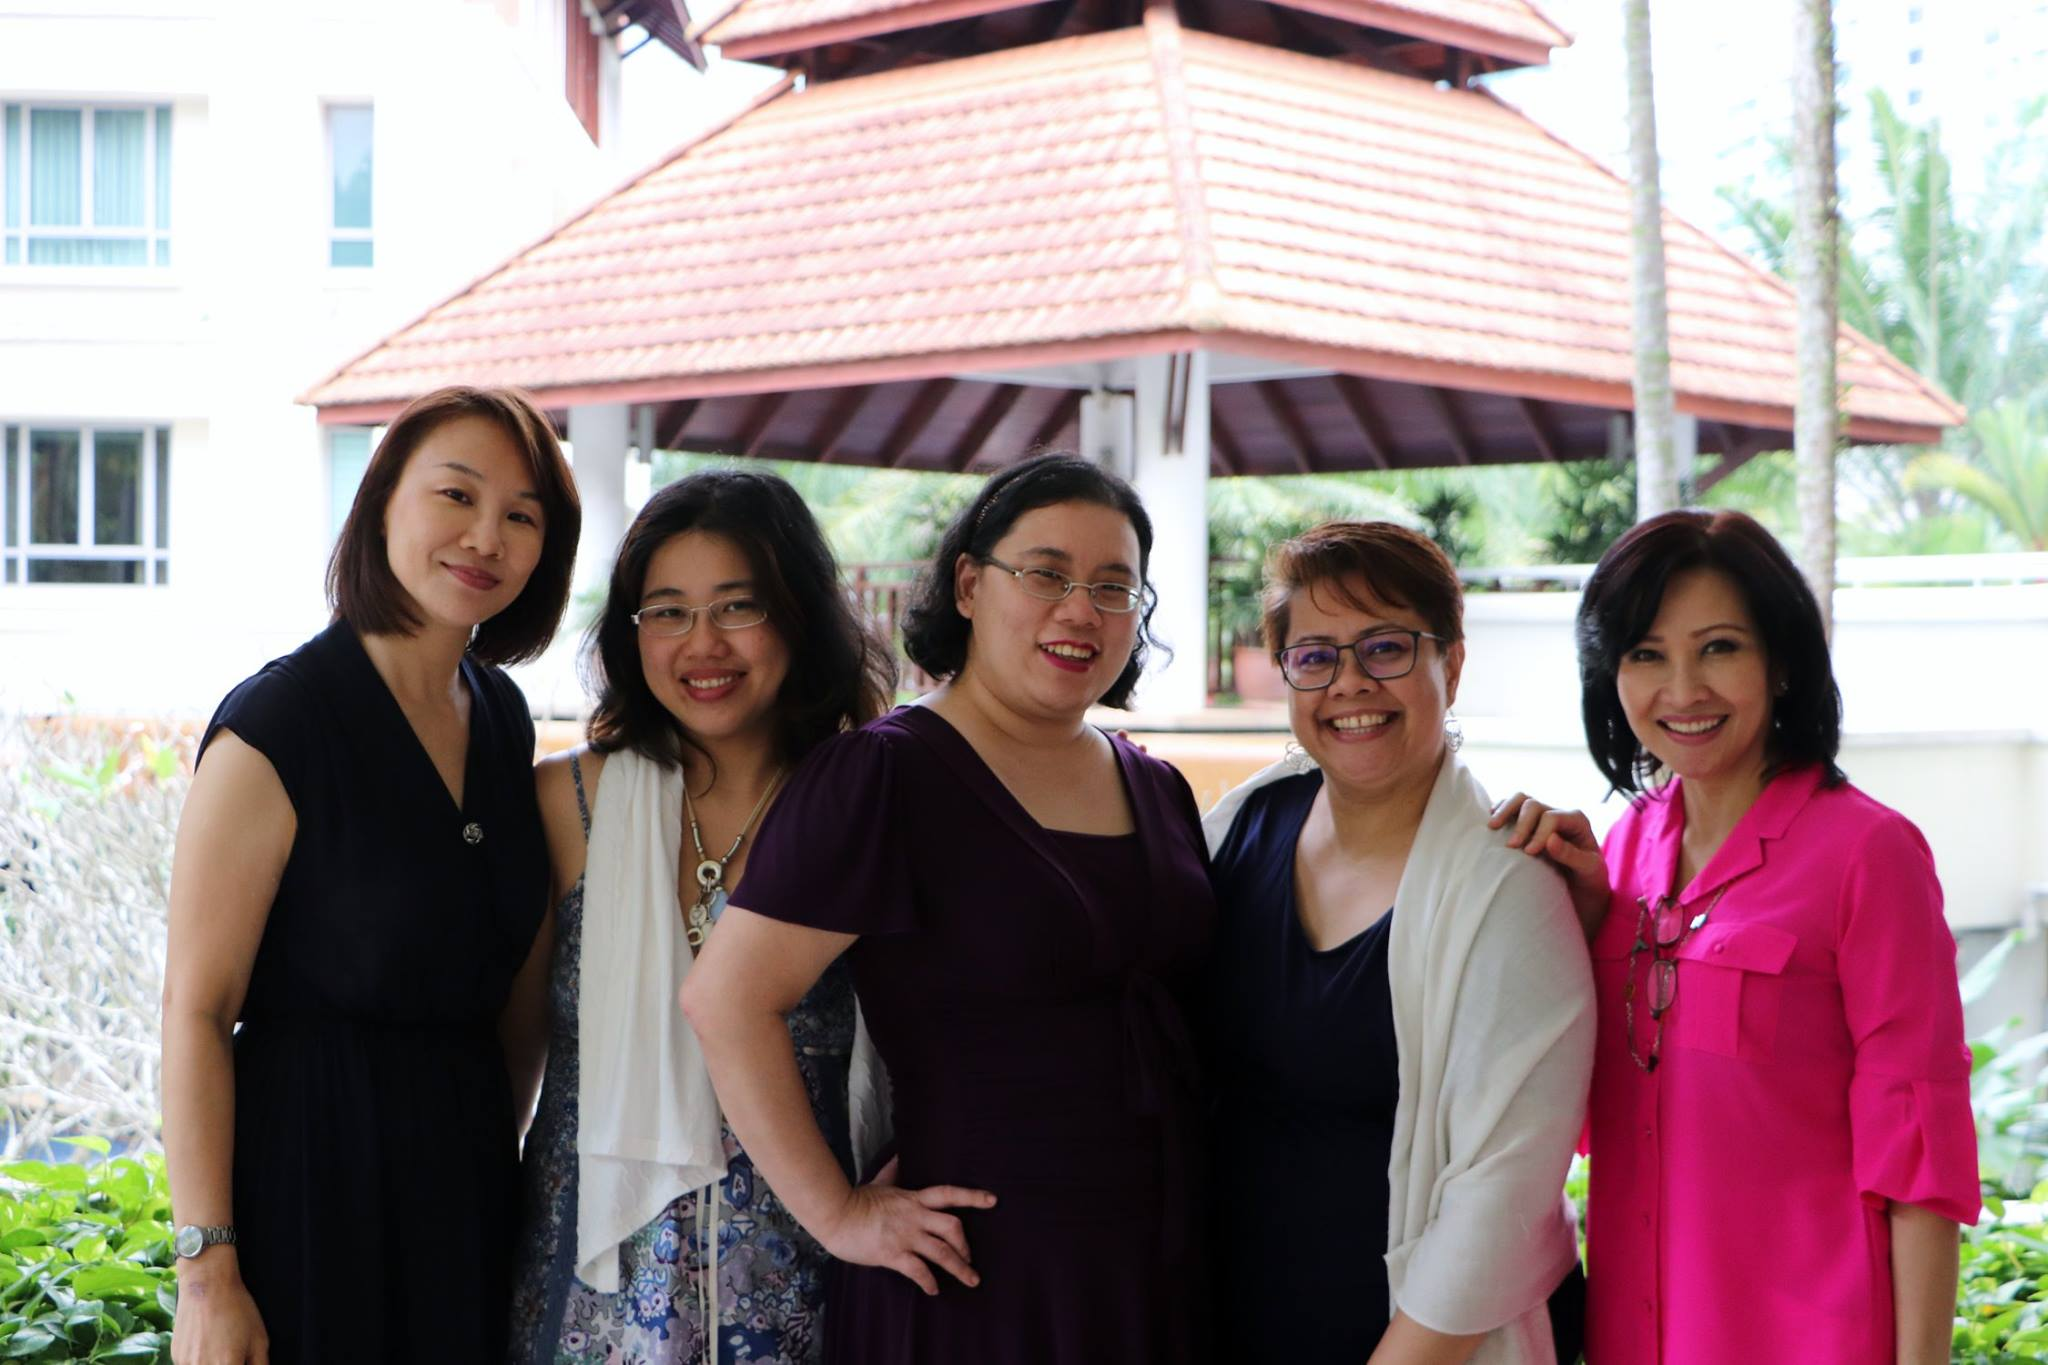 Book friends:  (From left) Diana, me,  Irene ,  Tina Isaacs  and Murni, at a KLBAC-organised event -  Exploring the Romance genre - a forum . Irene, Tina and I spoke of our love for the genre while Murni opened her condo to us as a venue. Diana, of course, was the emcee/chair of the forum. We had so much fun! And there was so much fooood. -- Photo taken by Alicia Cheah